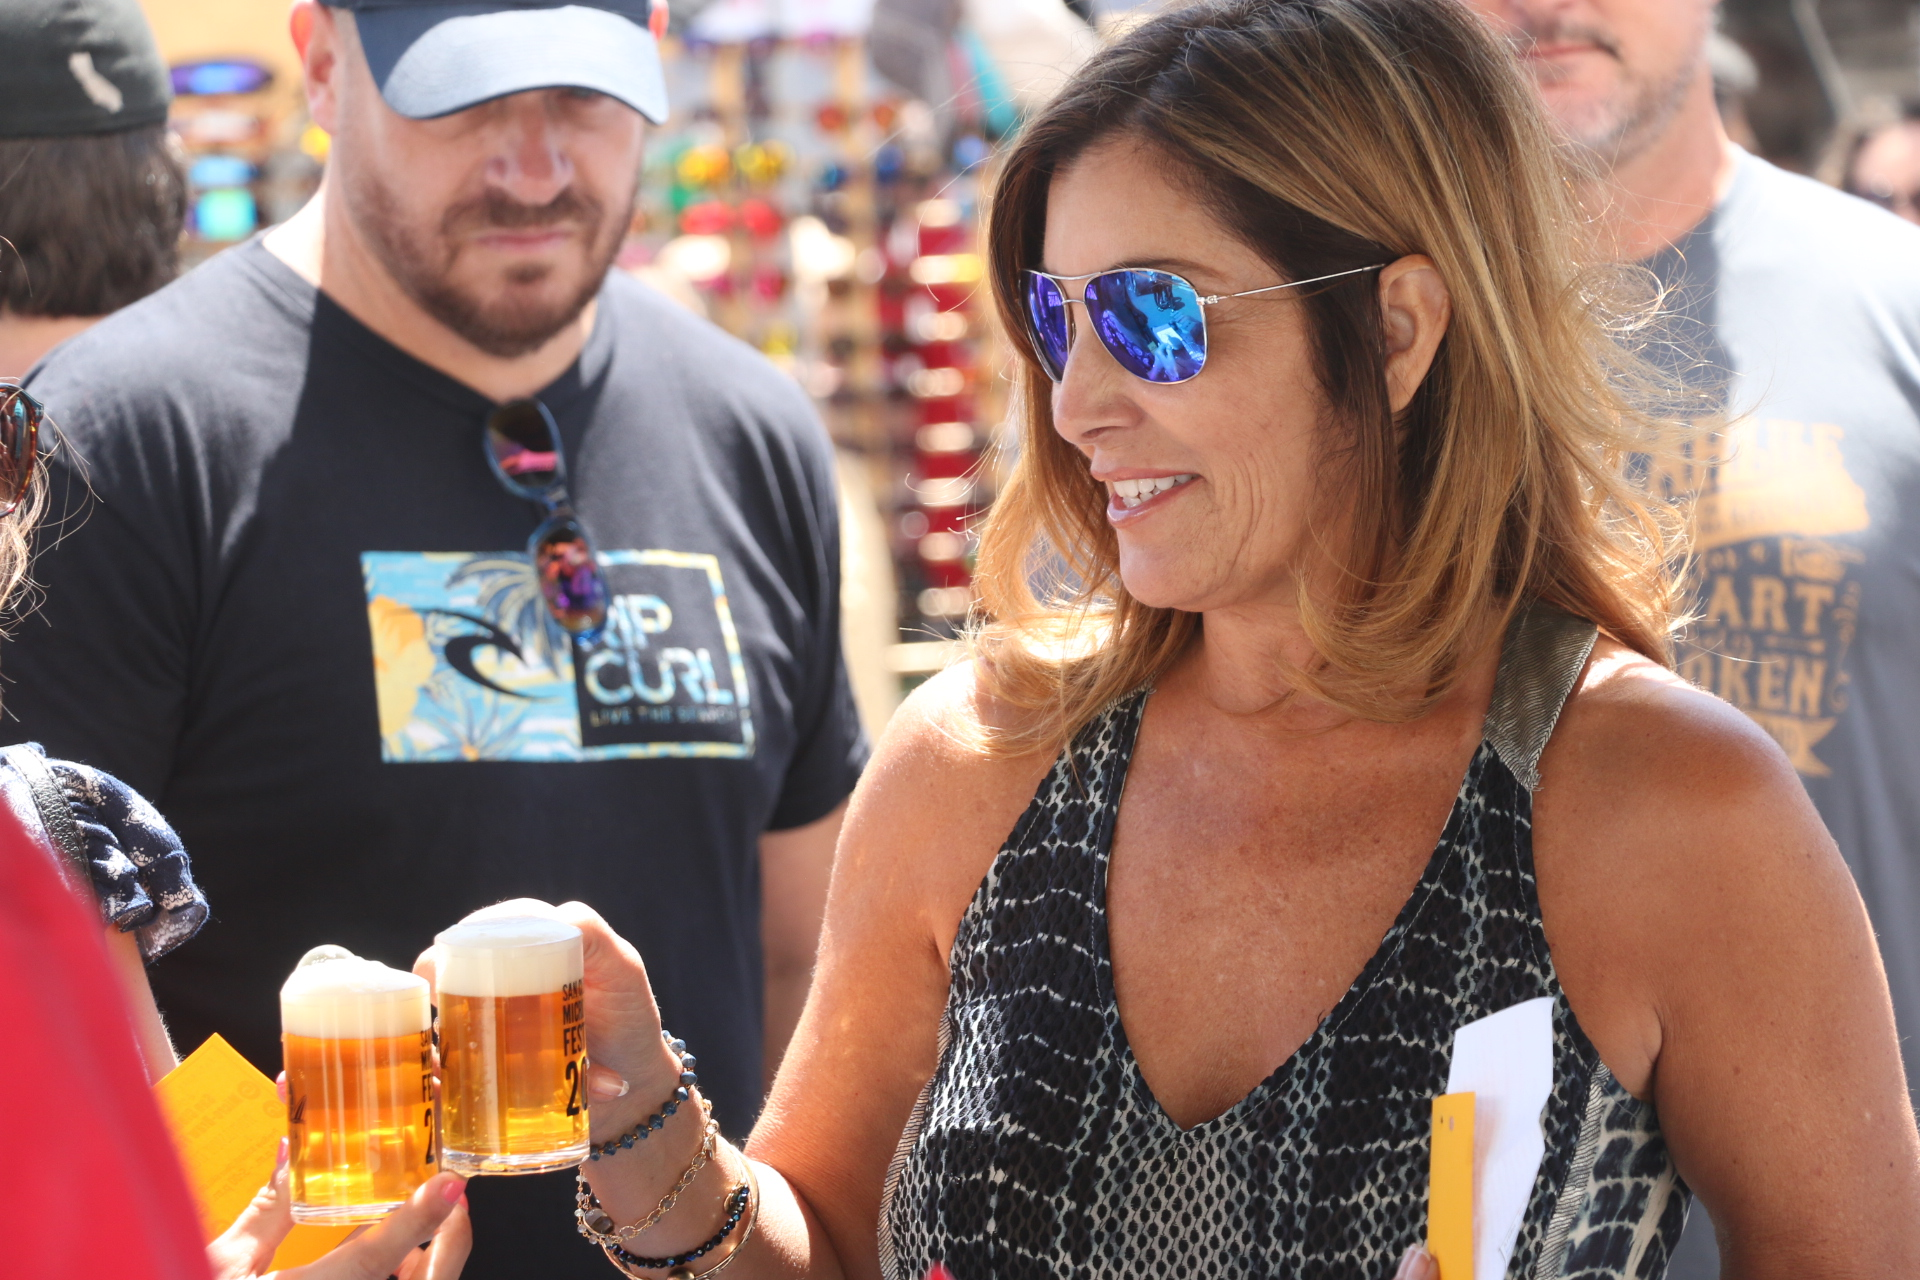 Julie Ragenovich toasts a fellow patron at the San Clemente Micro-Brew Fest on Saturday, April 23. Photo: Eric Heinz